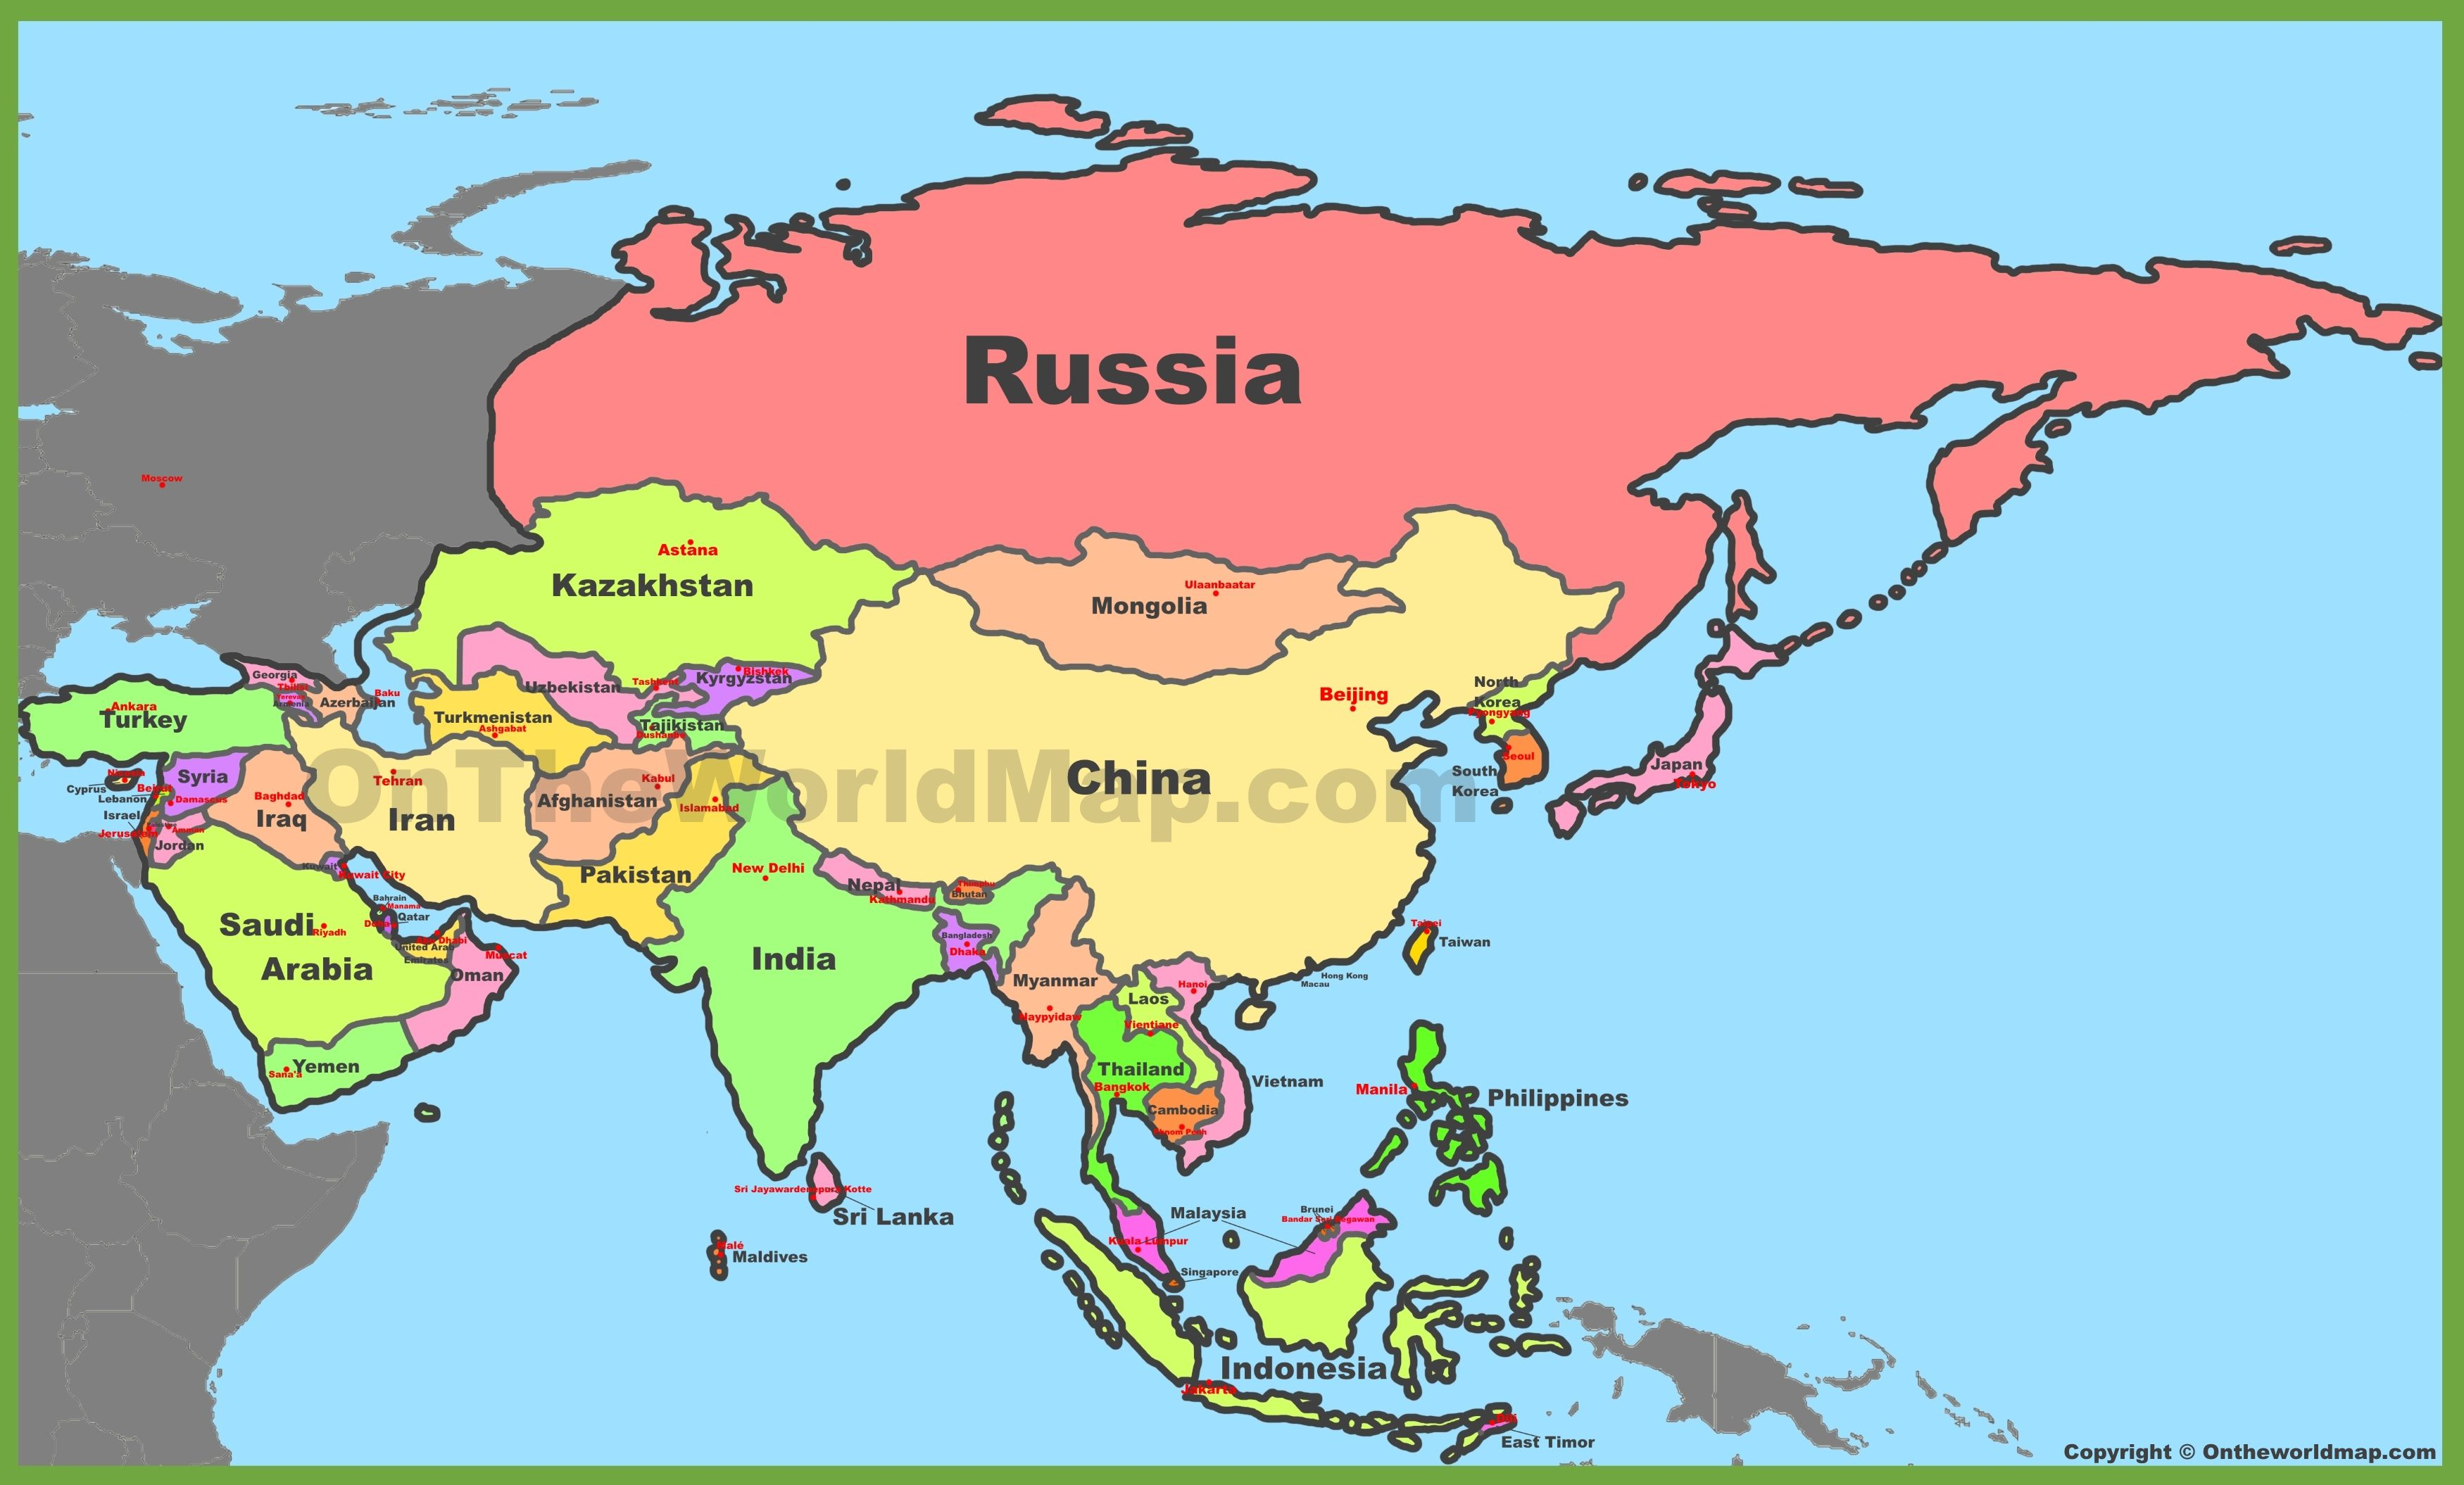 Map Of Asia With Countries And Capitals Map of Asia with countries and capitals | Asia map, World map with